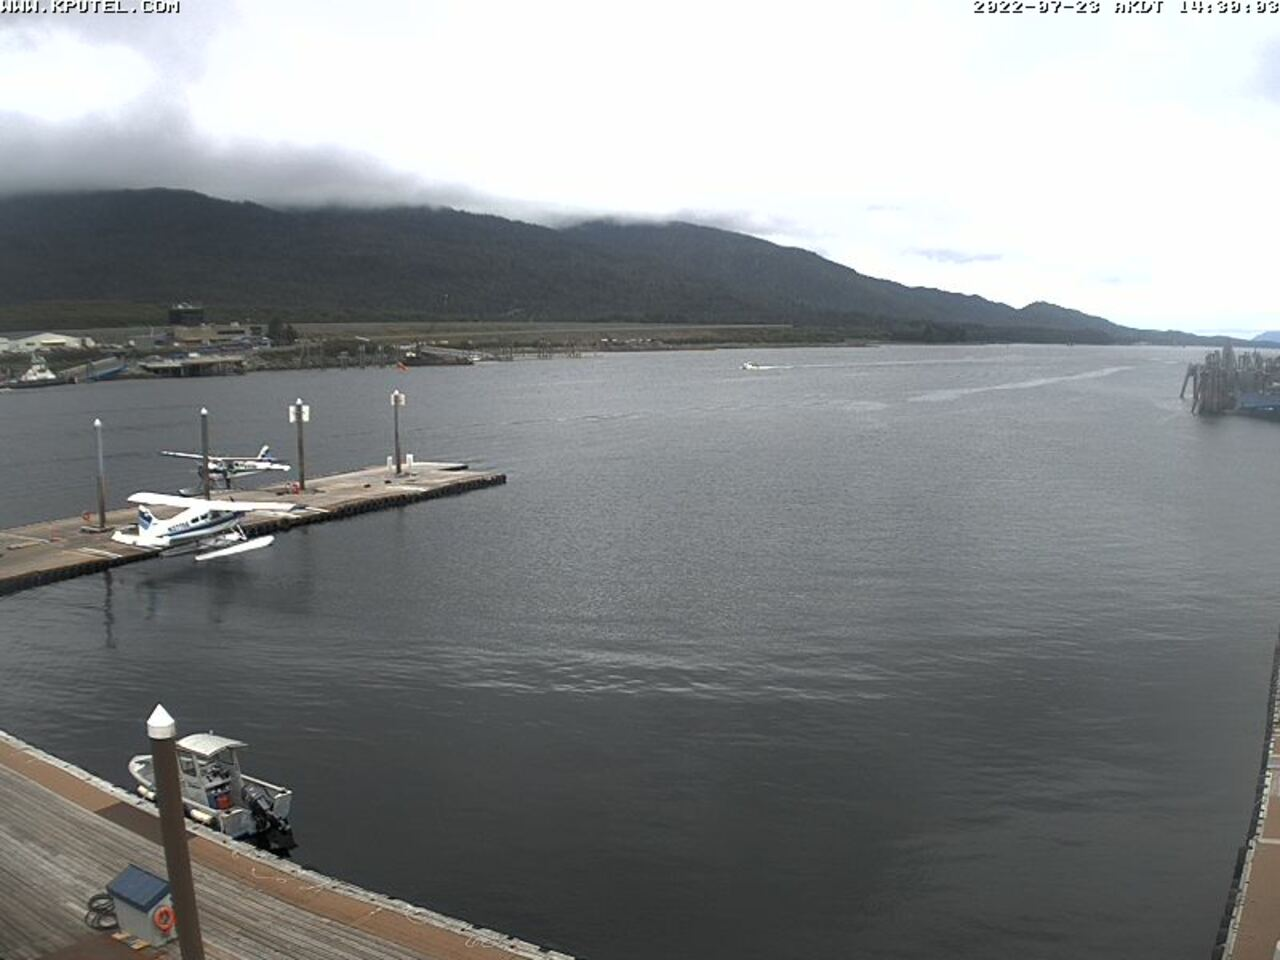 Current Ketchikan Webcam #5 Alaska-sized Image